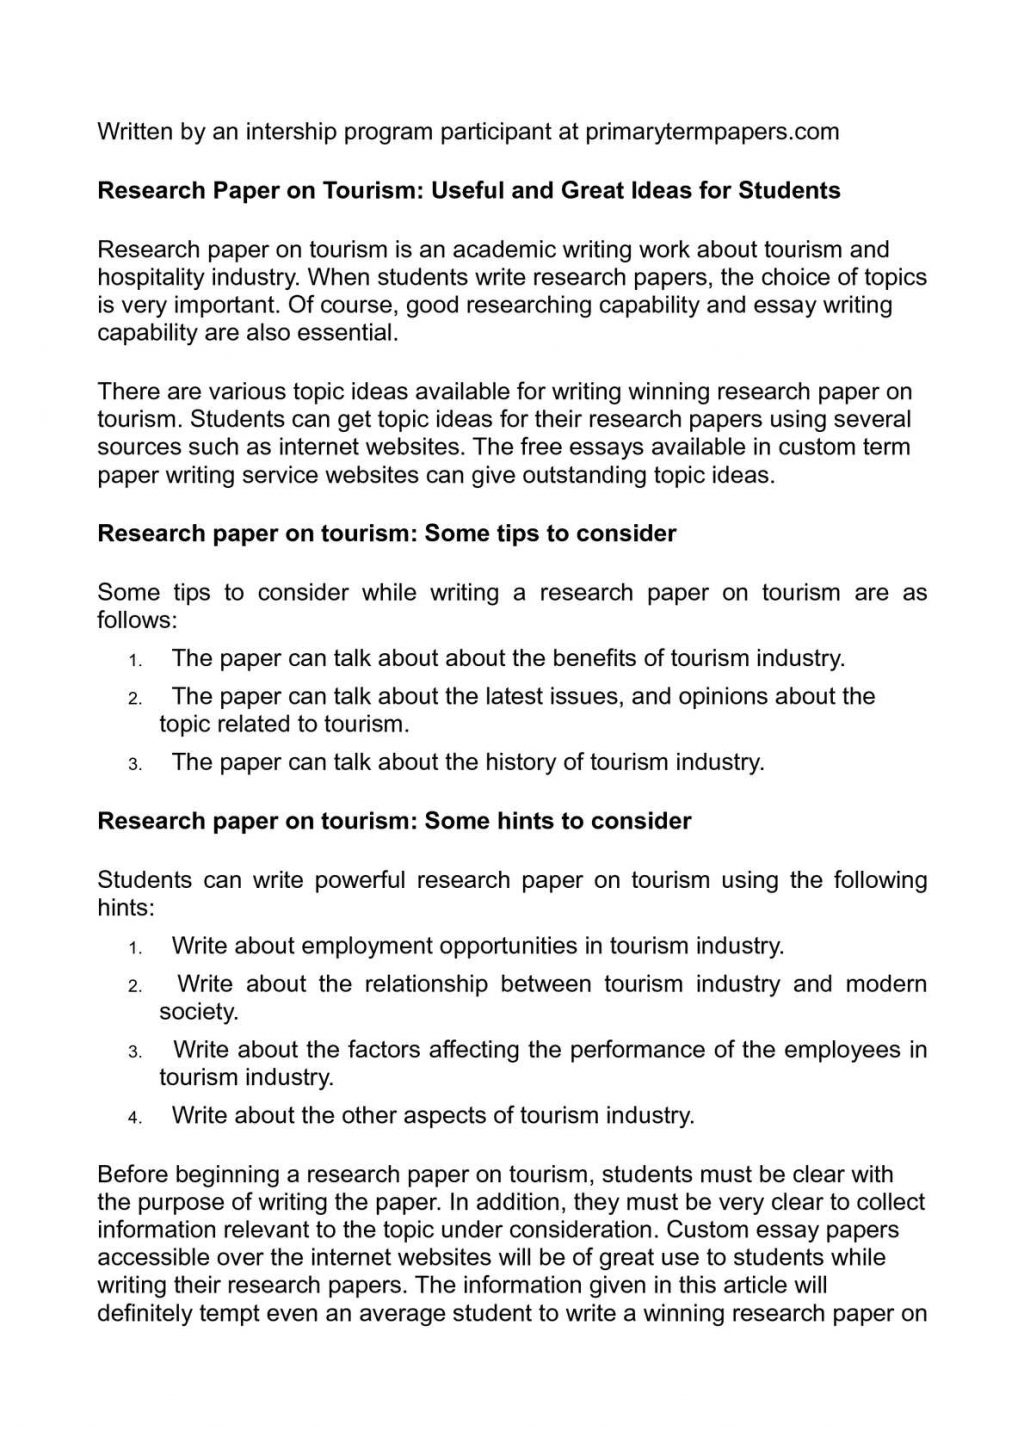 023 Research Paper 20calama20c220a9o On Tourism Useful And Great Ideas For Students Topics To Write About20 1024x1449 Sensational Health Related Public Full